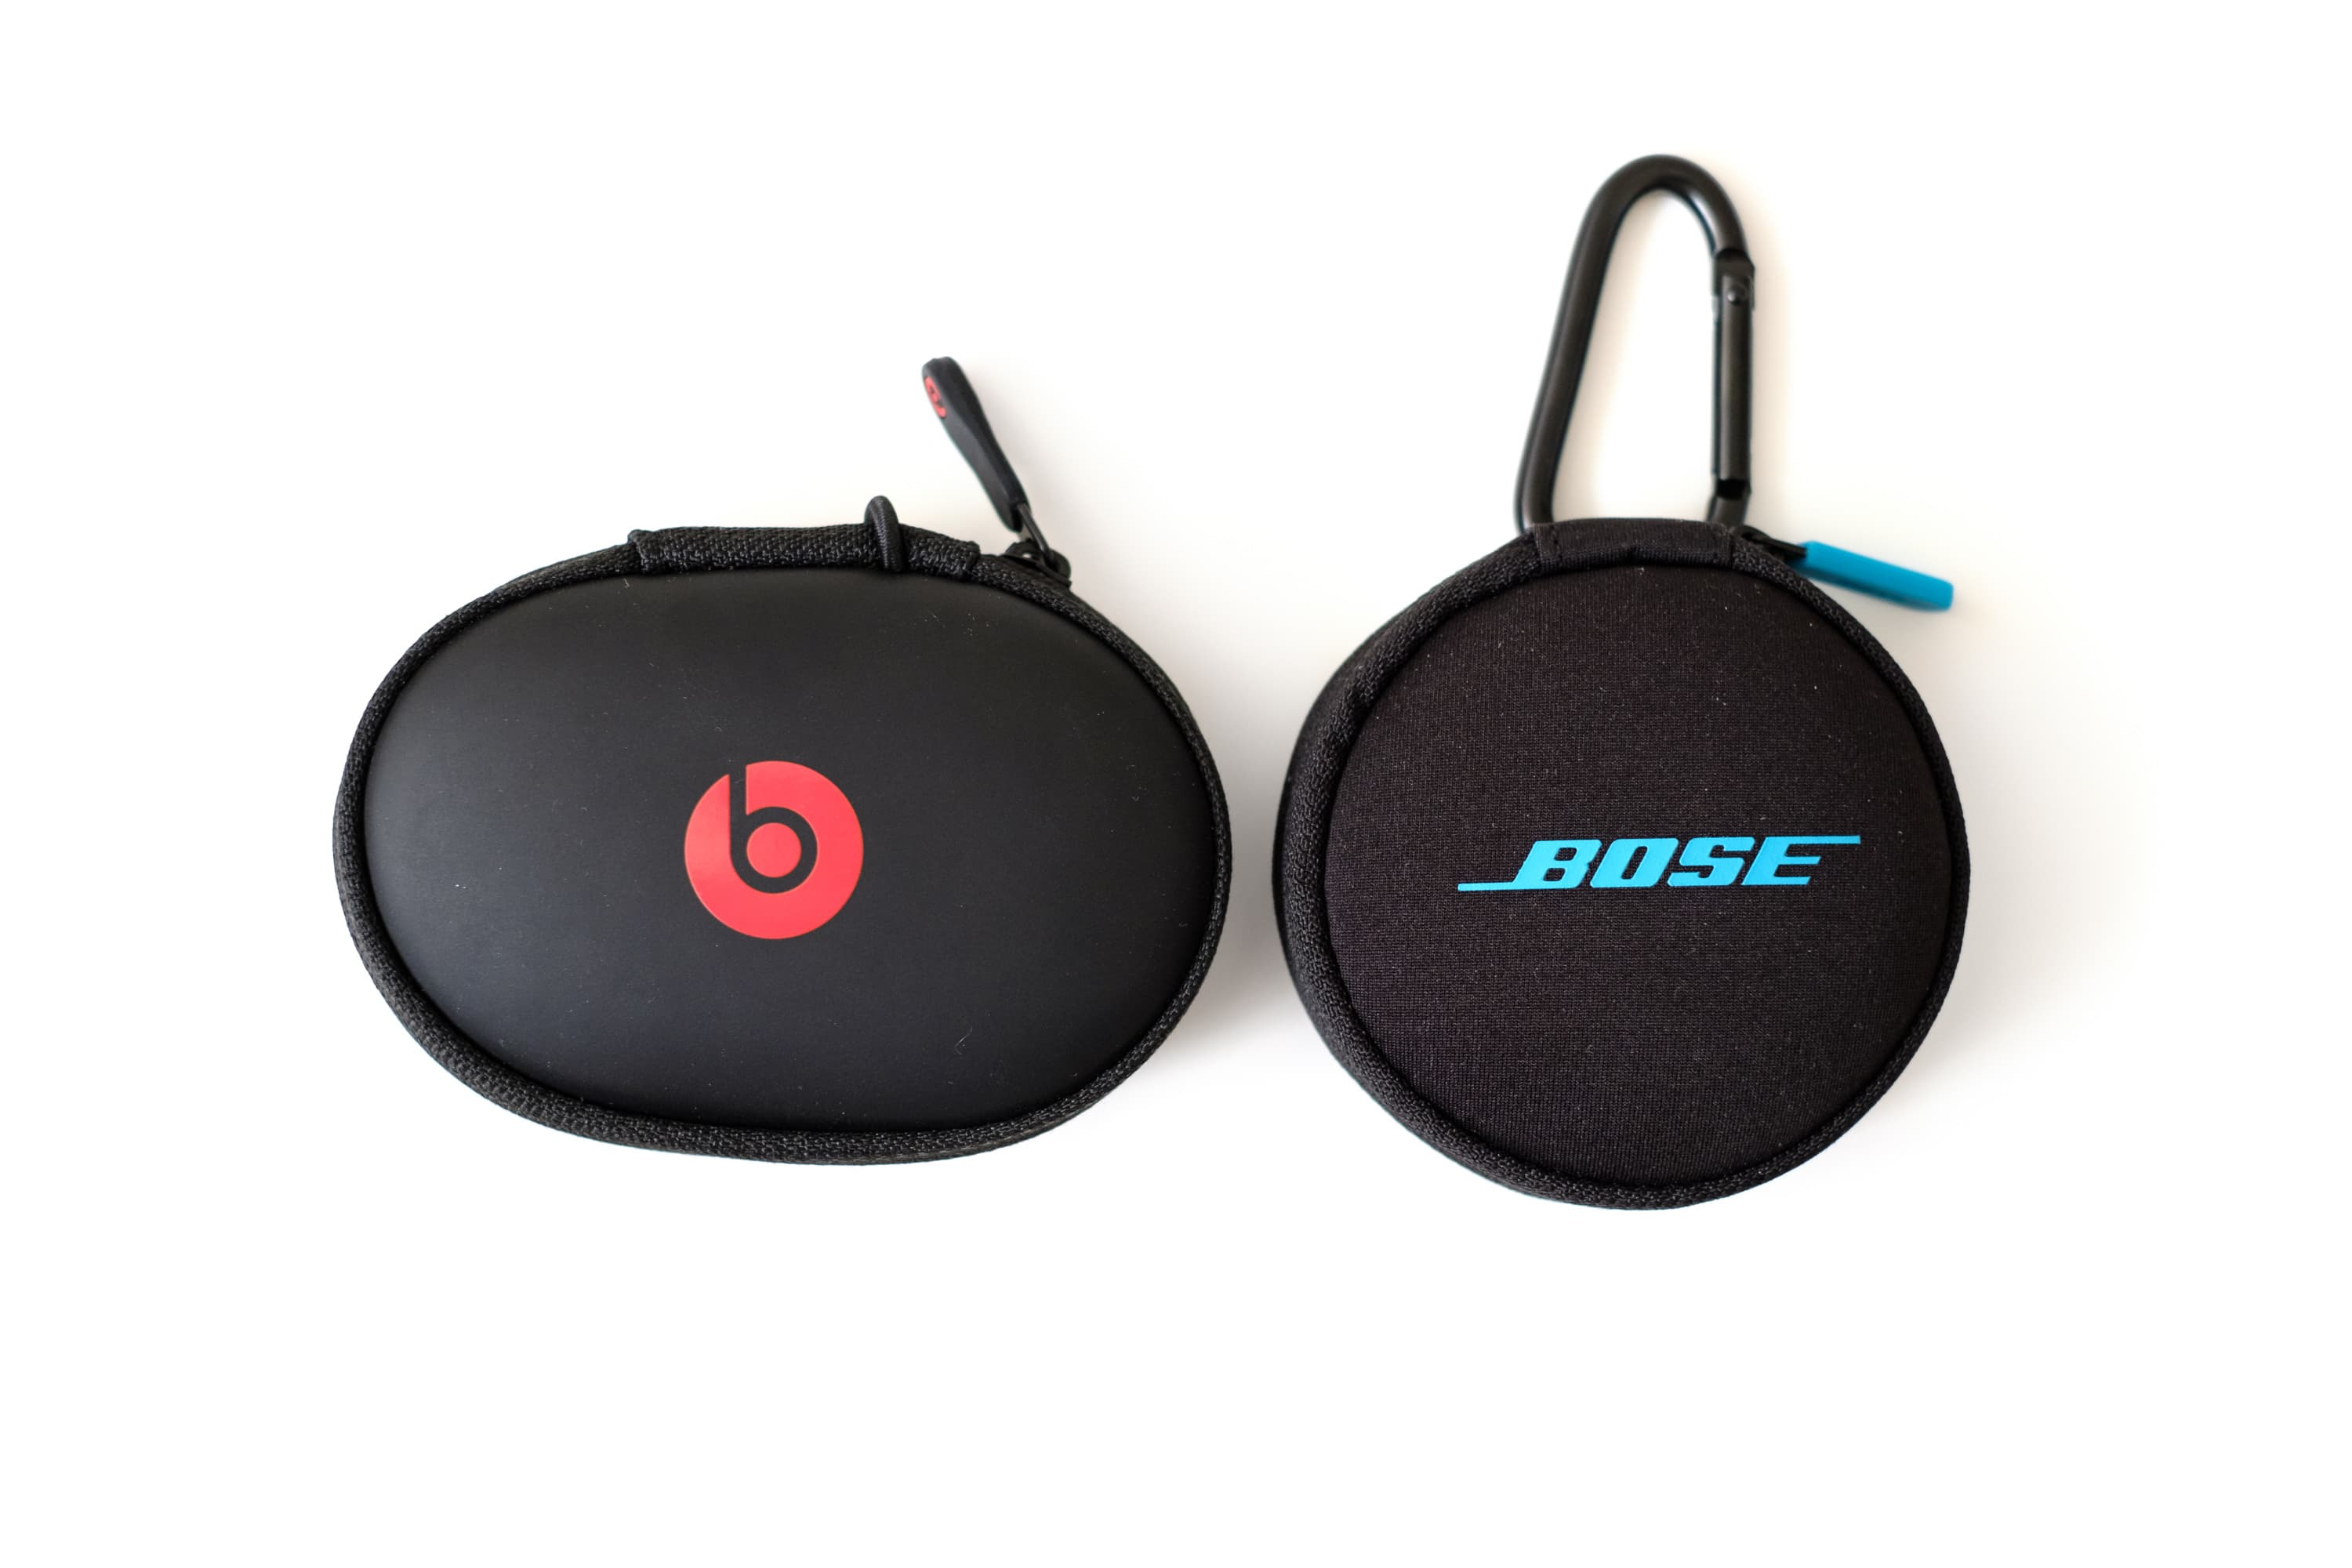 Bose Soundsport Headphones